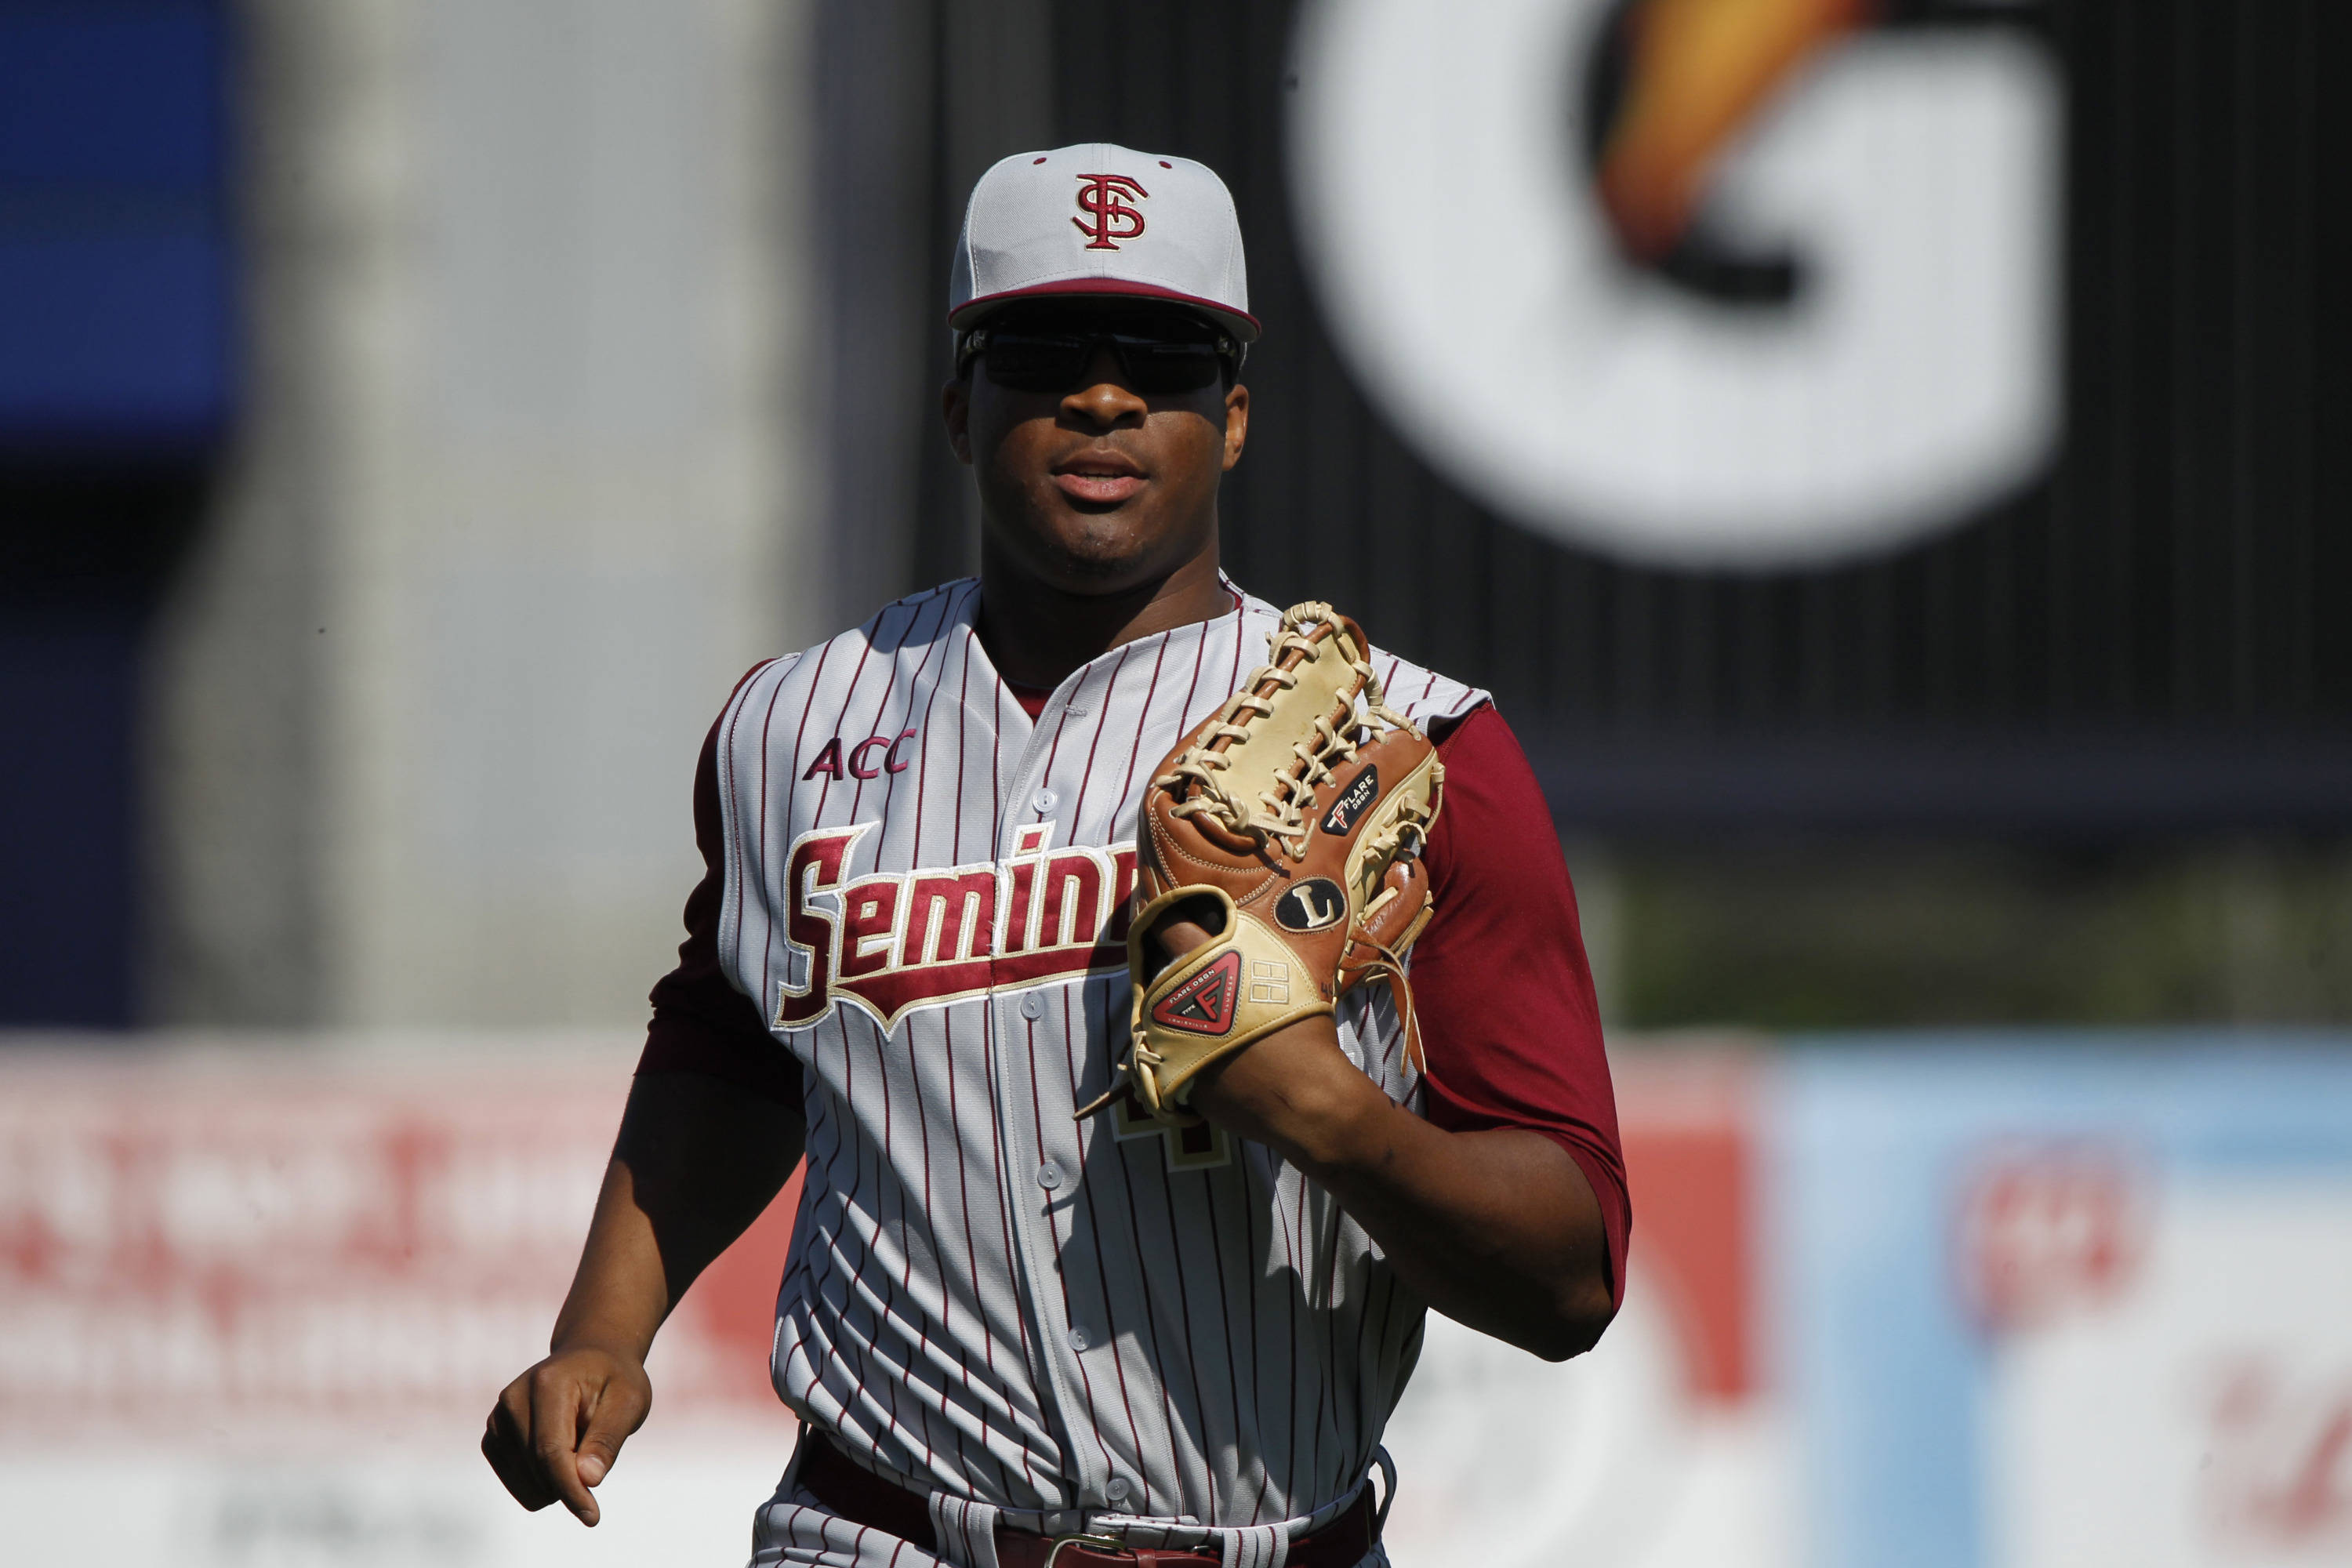 Feb 25, 2014; Tampa, FL, USA;  Florida State Seminoles pitcher/outfielder Jameis Winston (44) runs back to the dugout during the fifth inning against the New York Yankees at George M. Steinbrenner Field. Mandatory Credit: Kim Klement-USA TODAY Sports